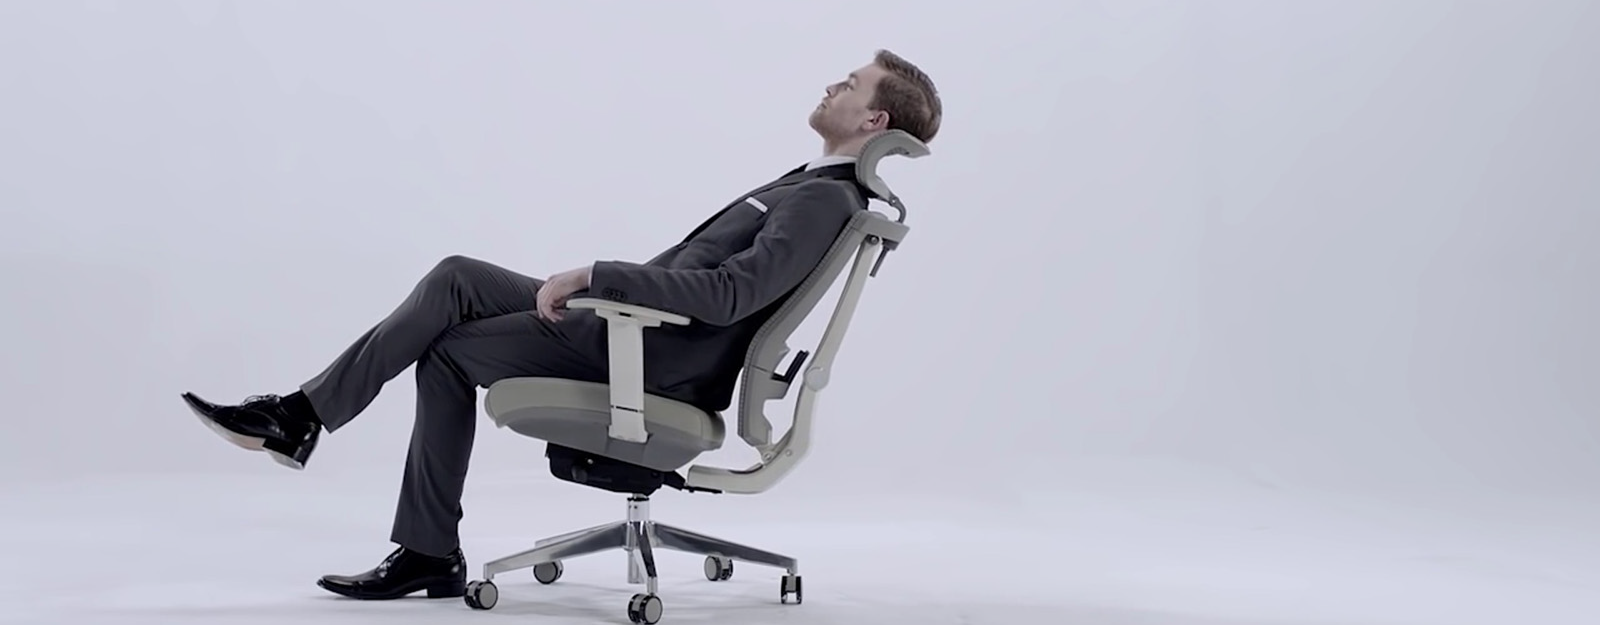 Inspirational Is It Possible to Build a Quality Ergonomic Office Chair Core